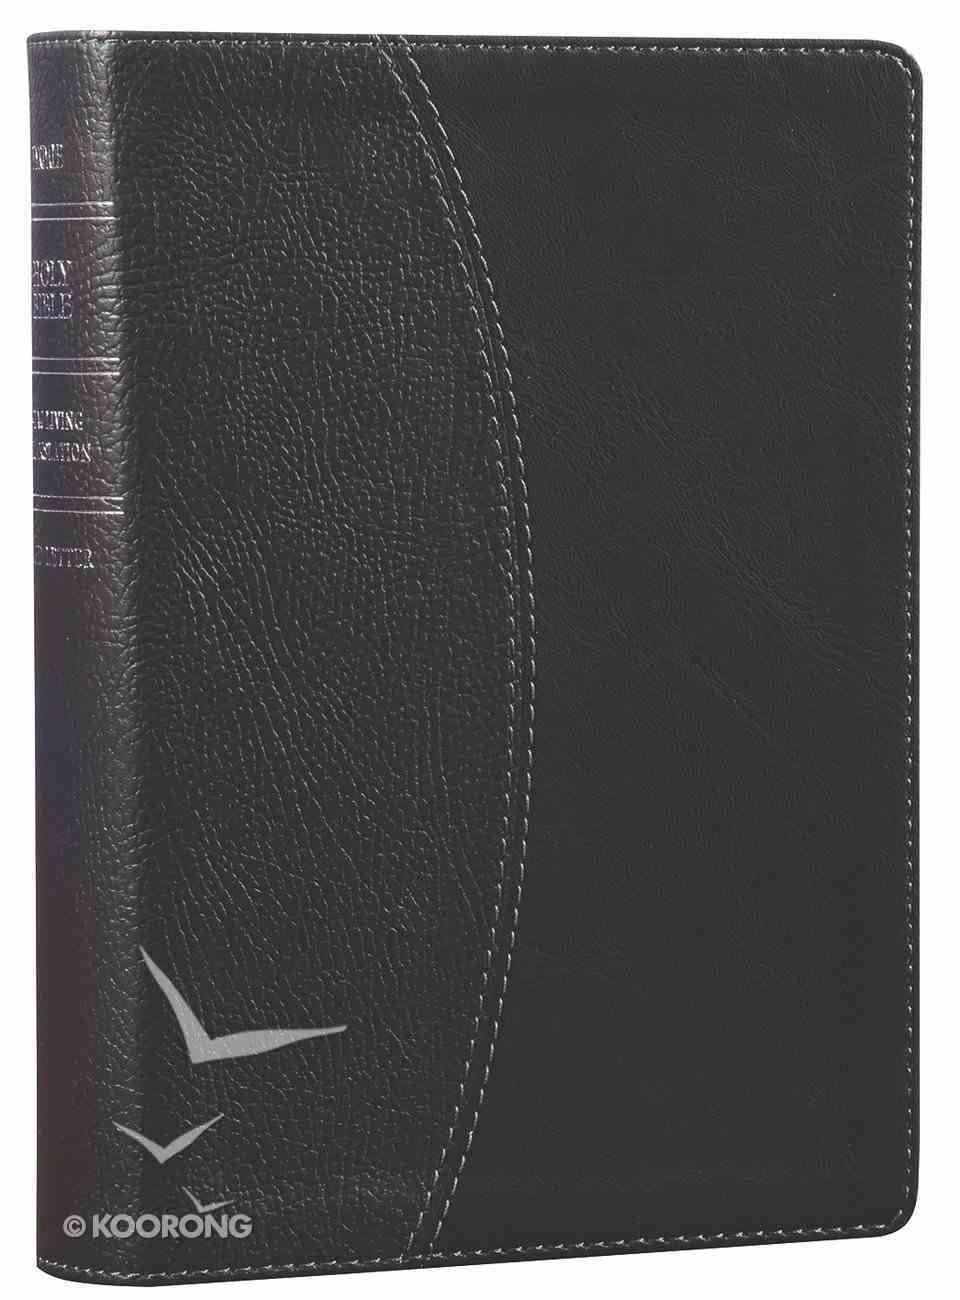 NLT Compact Large Print Bible Black Onyx (Red Letter Edition) Imitation Leather